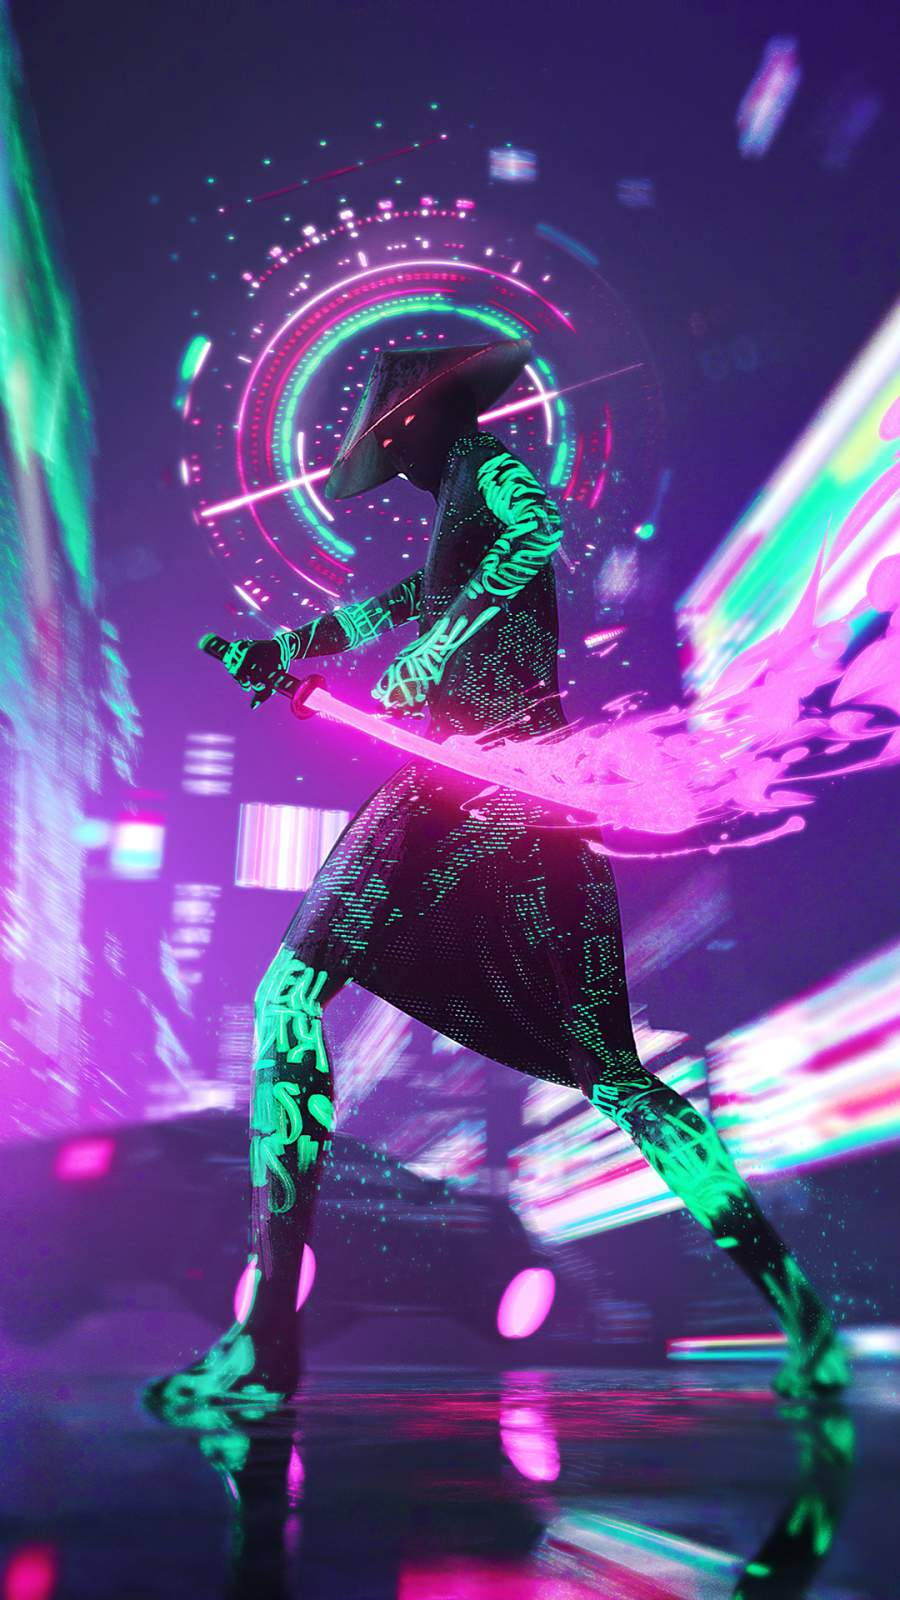 Cyberpunk Ninja iPhone Wallpaper